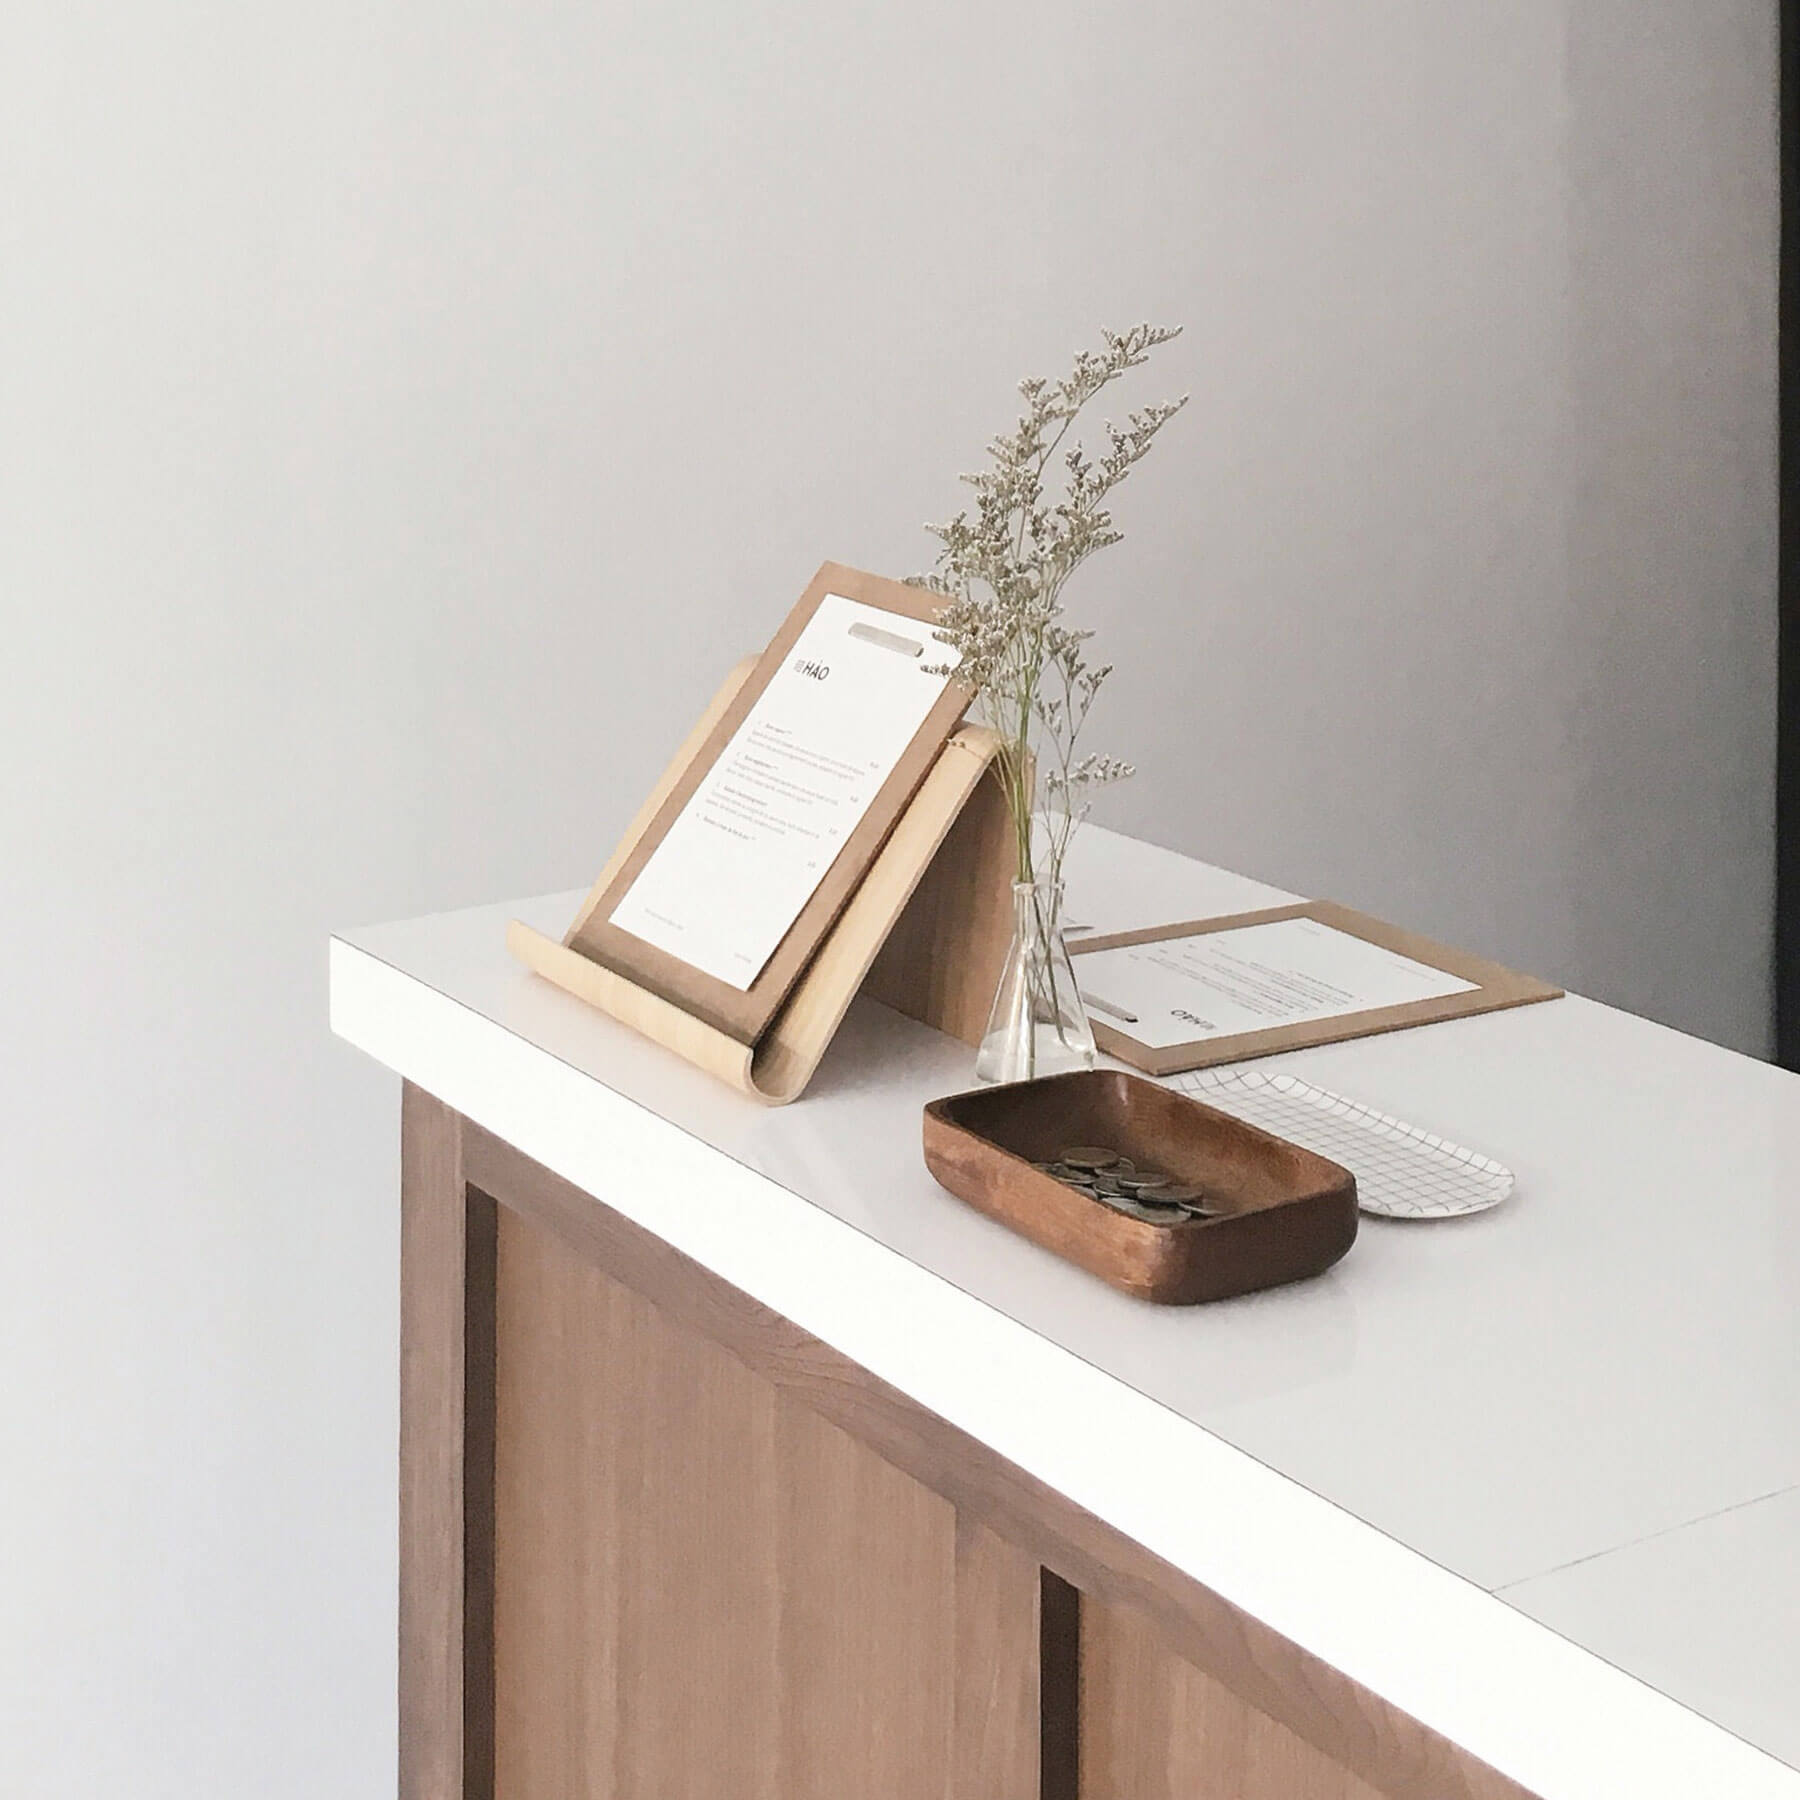 clipboards on a counter